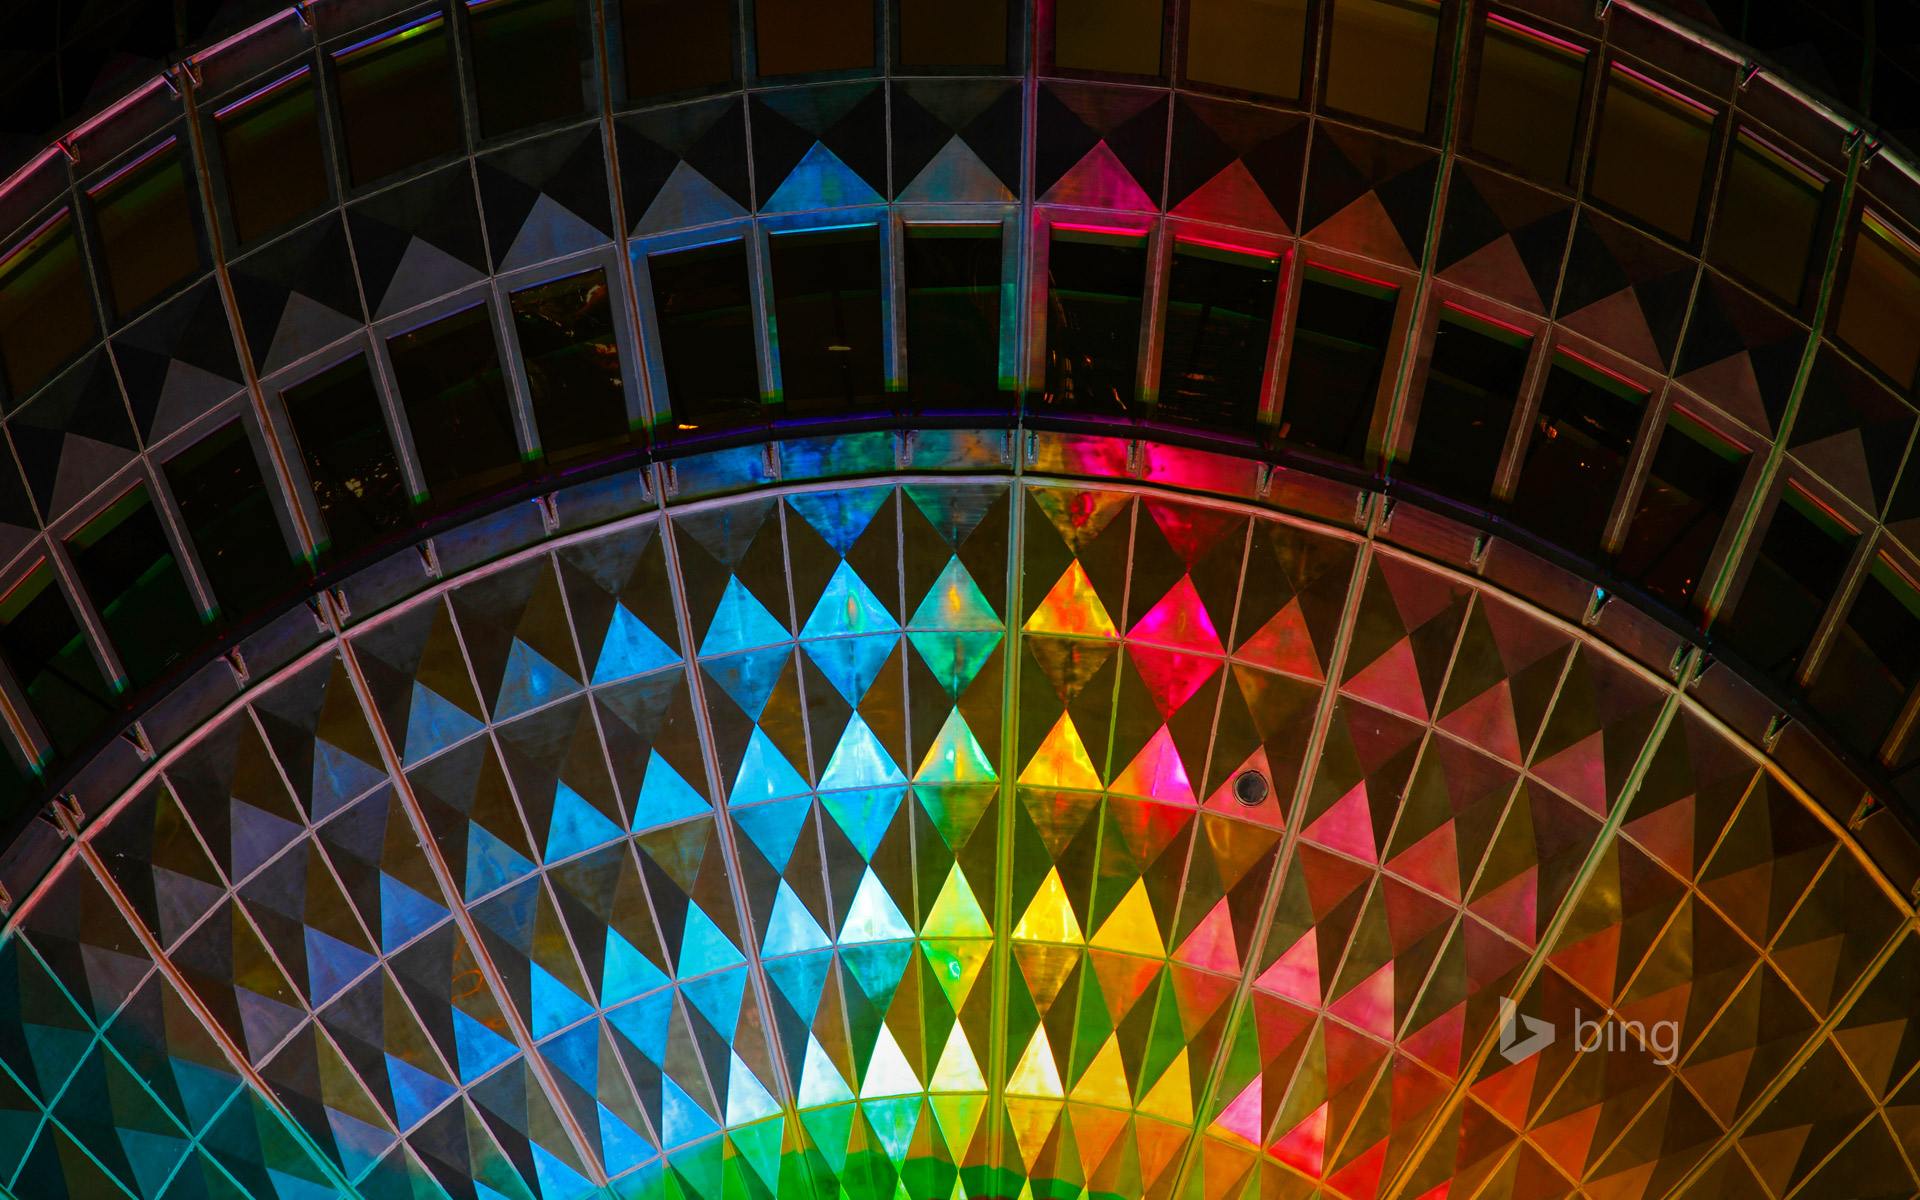 Detail of a television tower illuminated during the Festival of Lights in 2011, Berlin, Germany